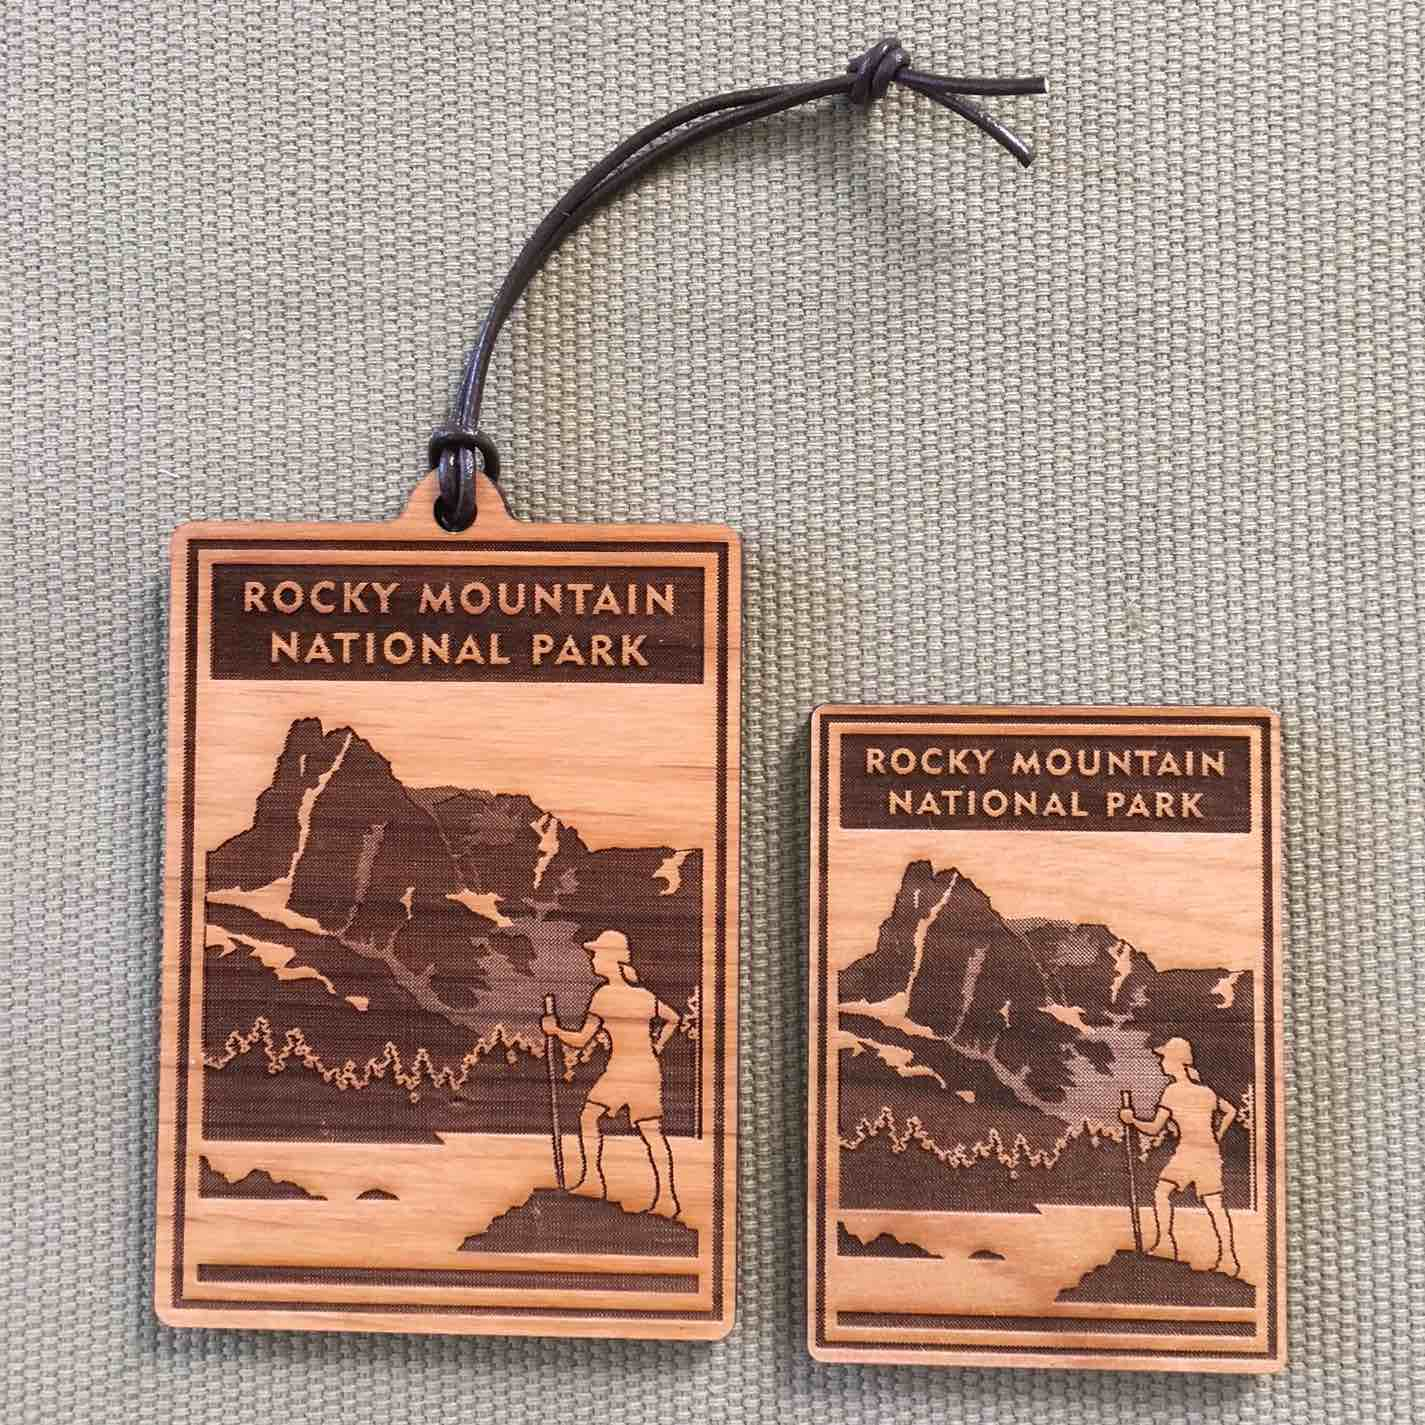 Rocky Mountain National Park - Scenic Icon Ornament & Magnet